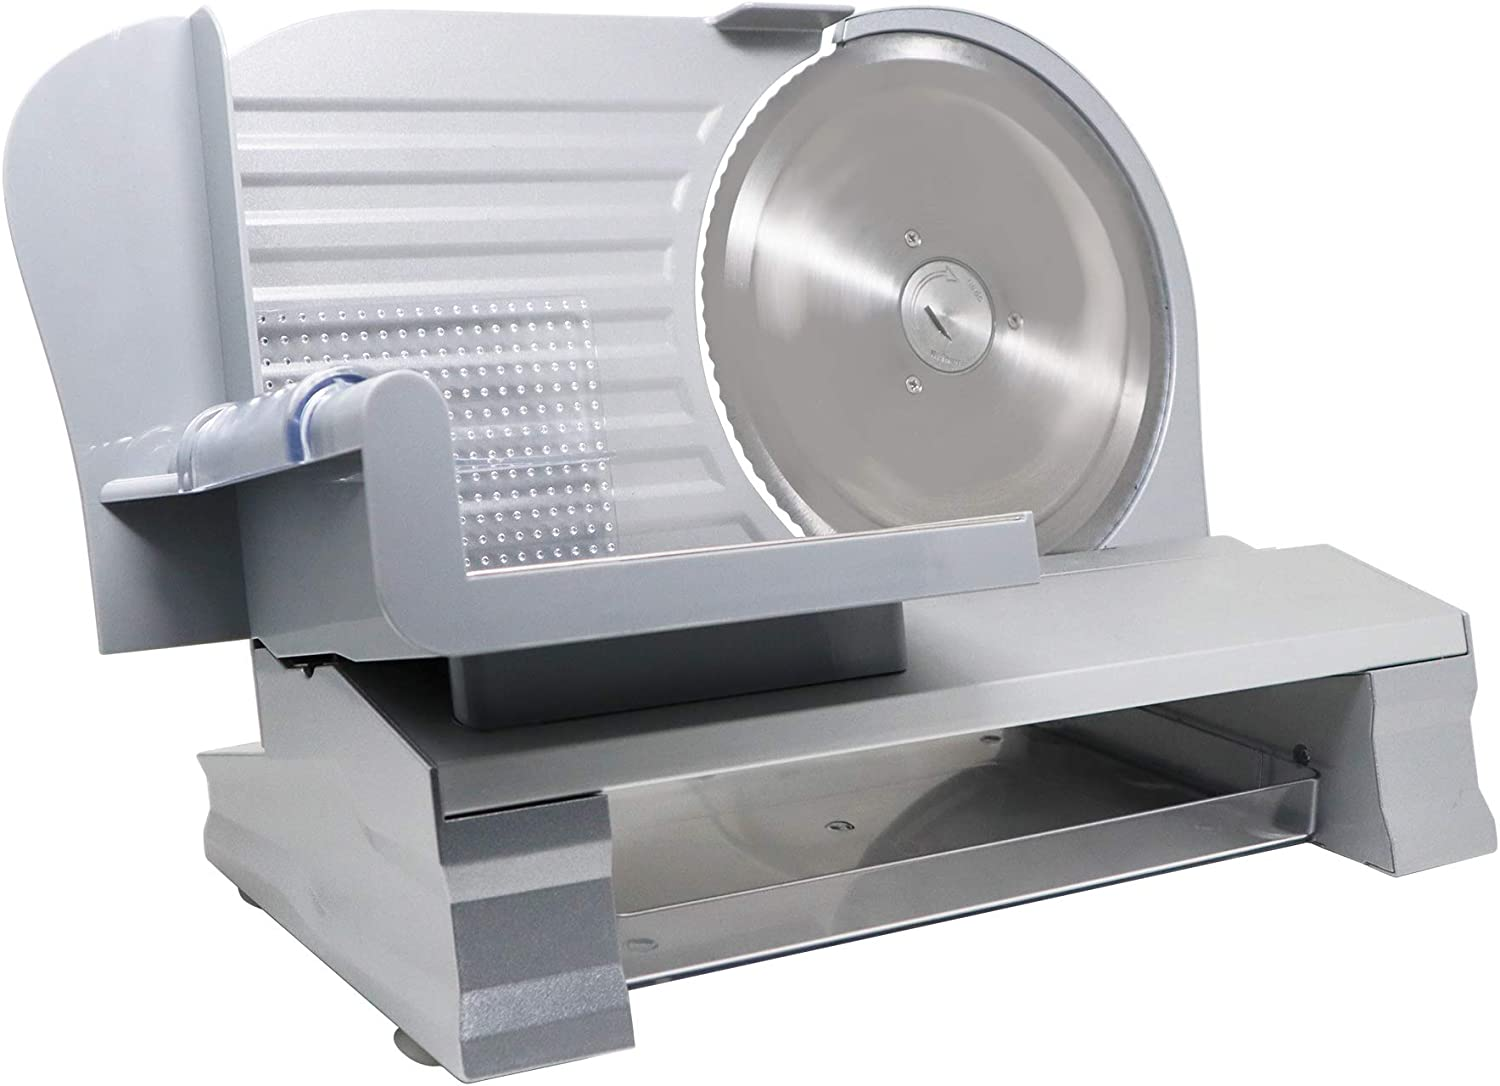 2021 autumn and winter new Clearance SALE! Limited time! LEM Products Slicer Meat